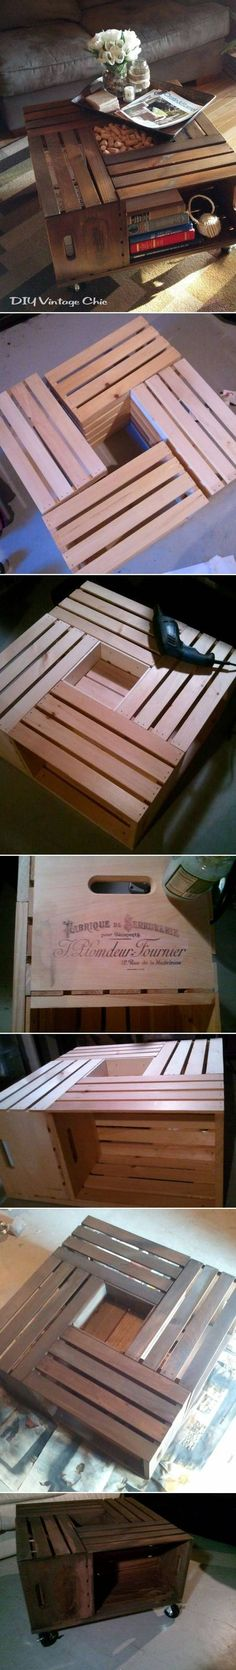 DIY Wine Crate Table DIY Projects / UsefulDIY.com